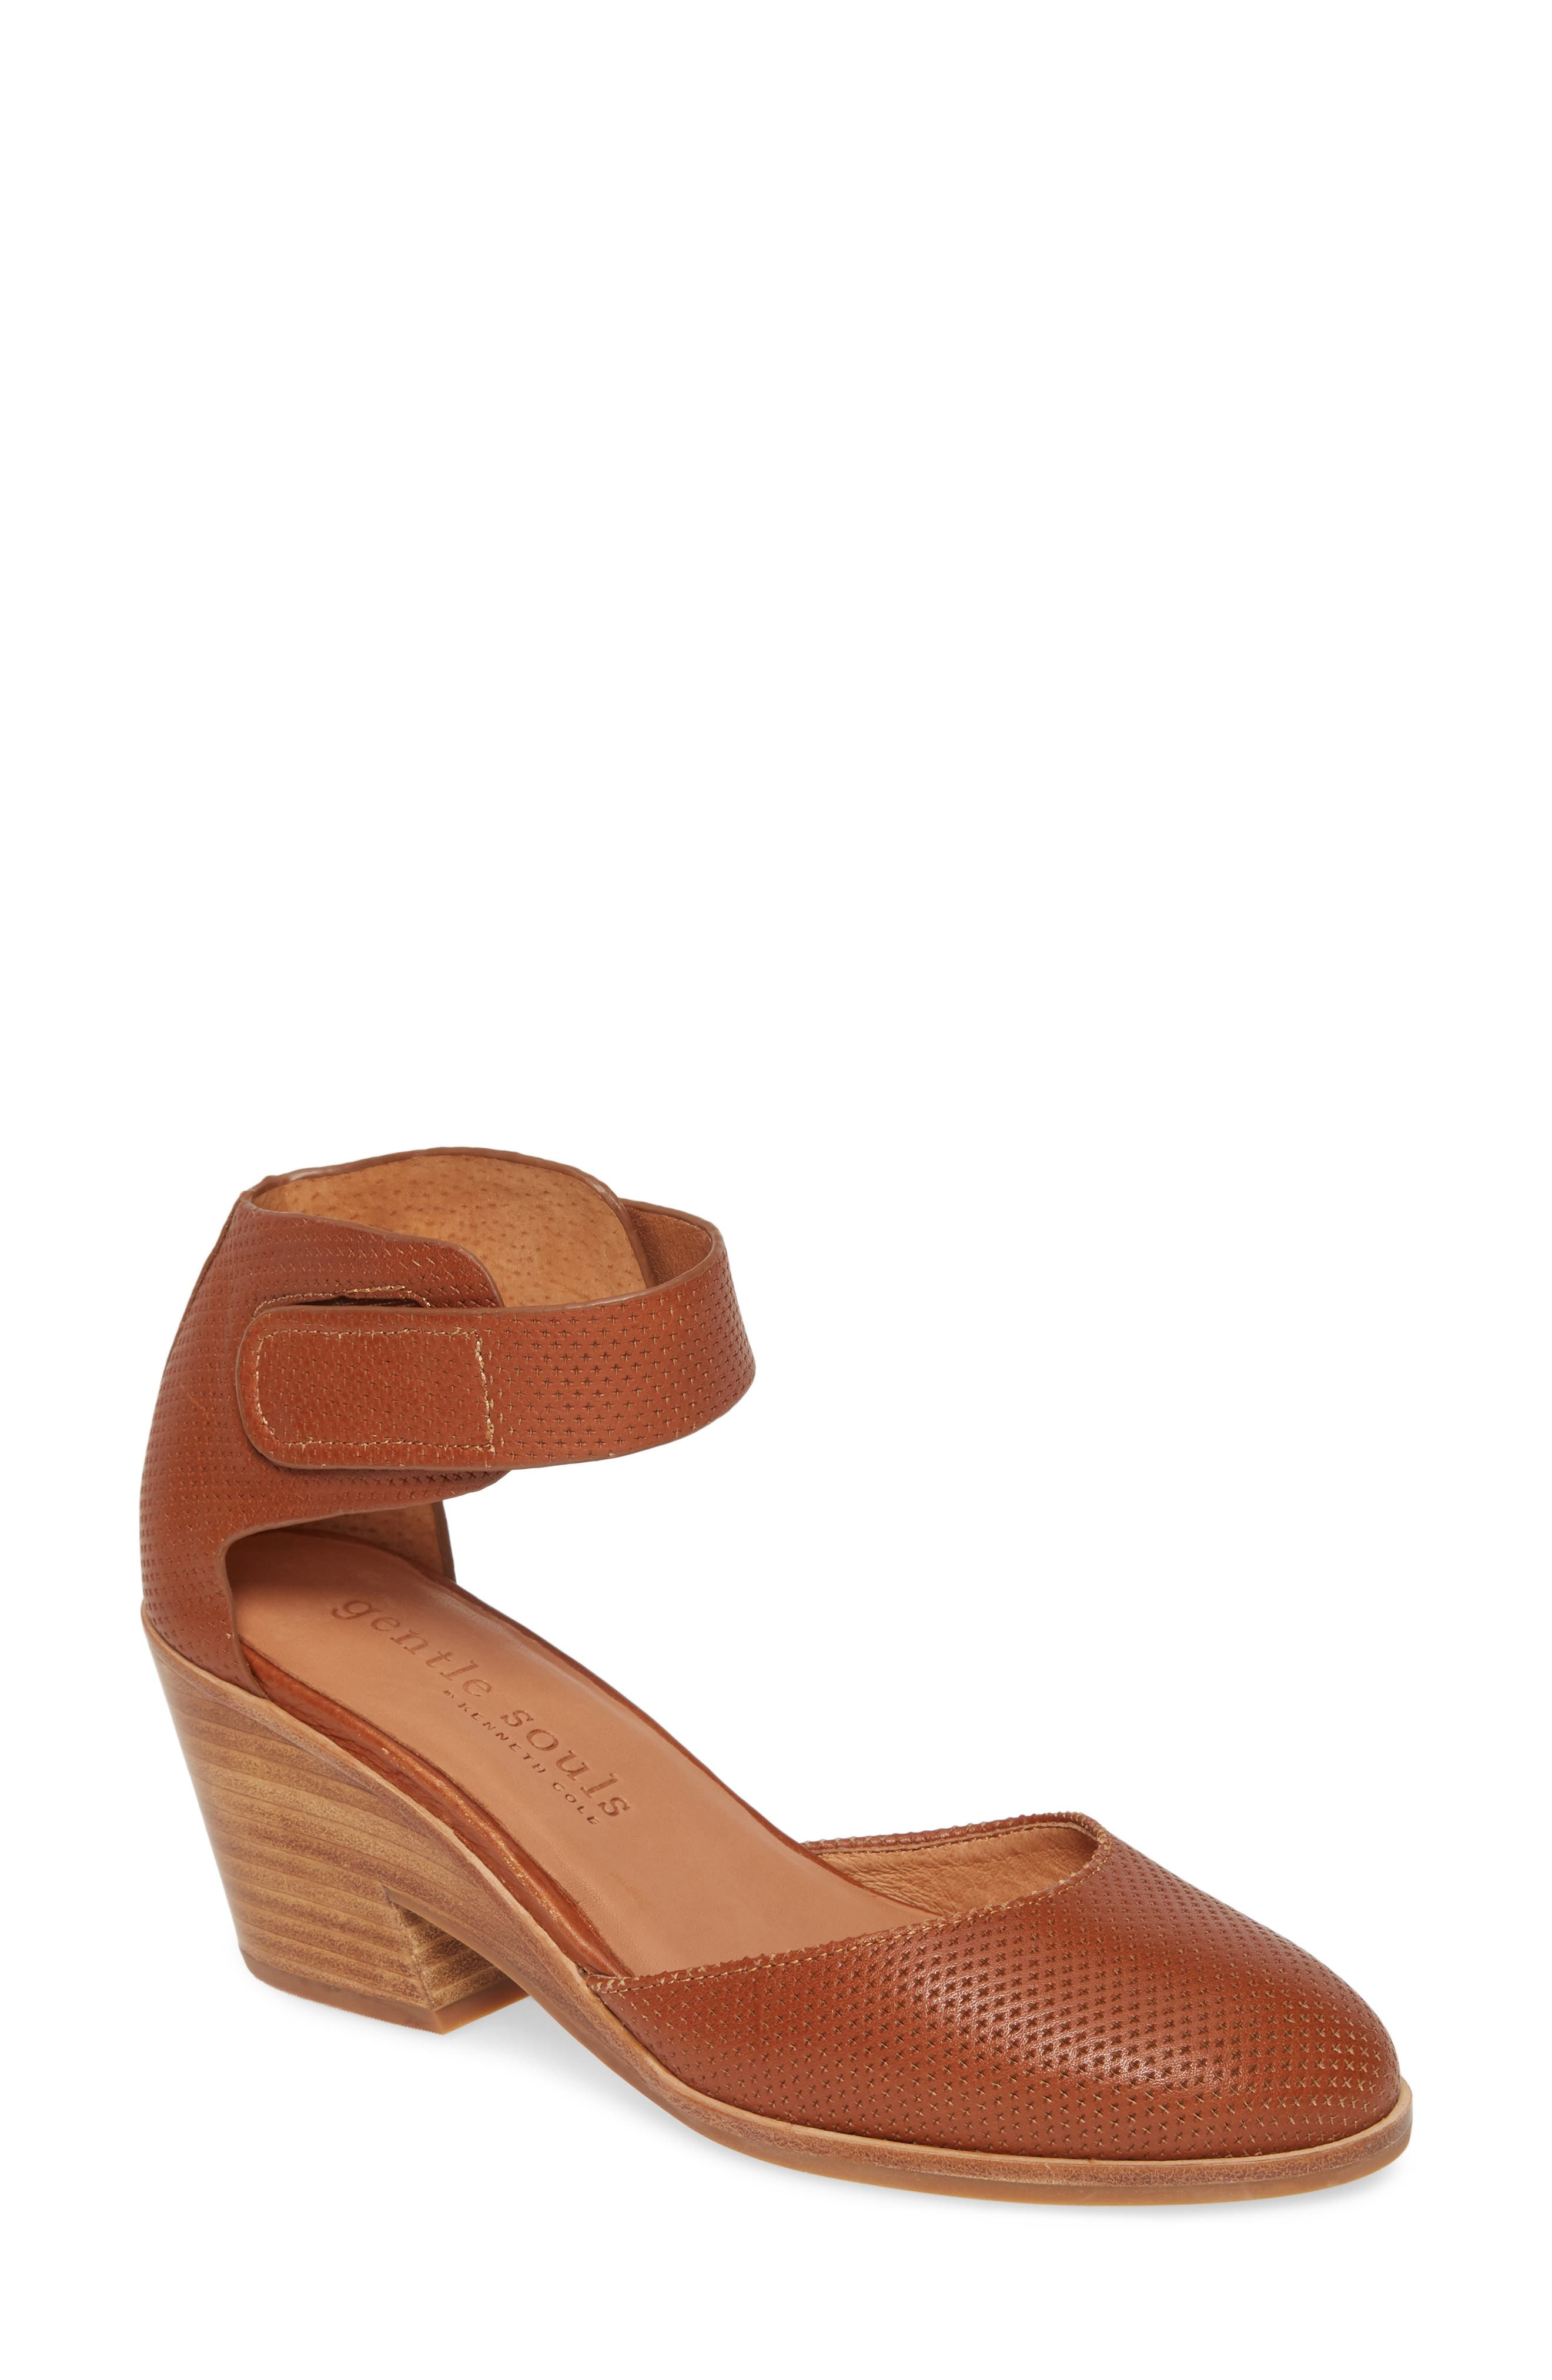 Gentle Souls By Kenneth Cole Blaise 2 Pump, Brown